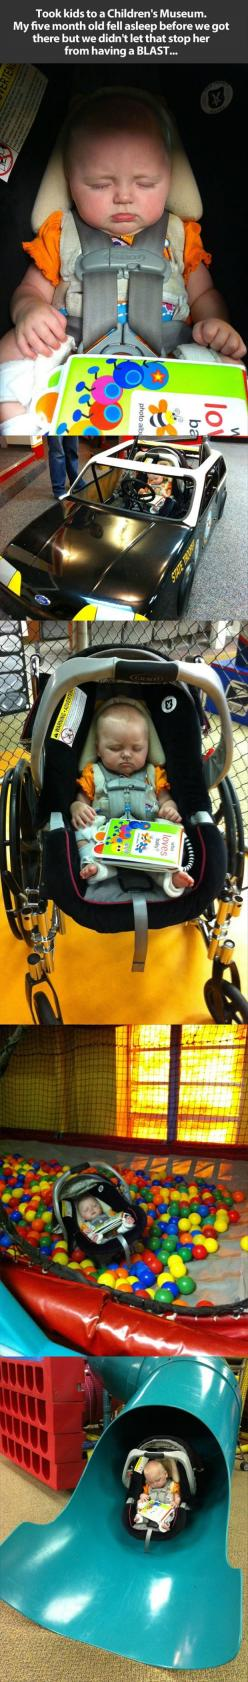 Funny pics for a card!!!!!!!!!!@@@@@@@@@@@@@     Dump A Day Funny Pictures Of The Day - 88 Pics: Giggle, Funny Pics, Funny Pictures, Sleeping Babies, Awesome Parents, Funny Stuff, Kid